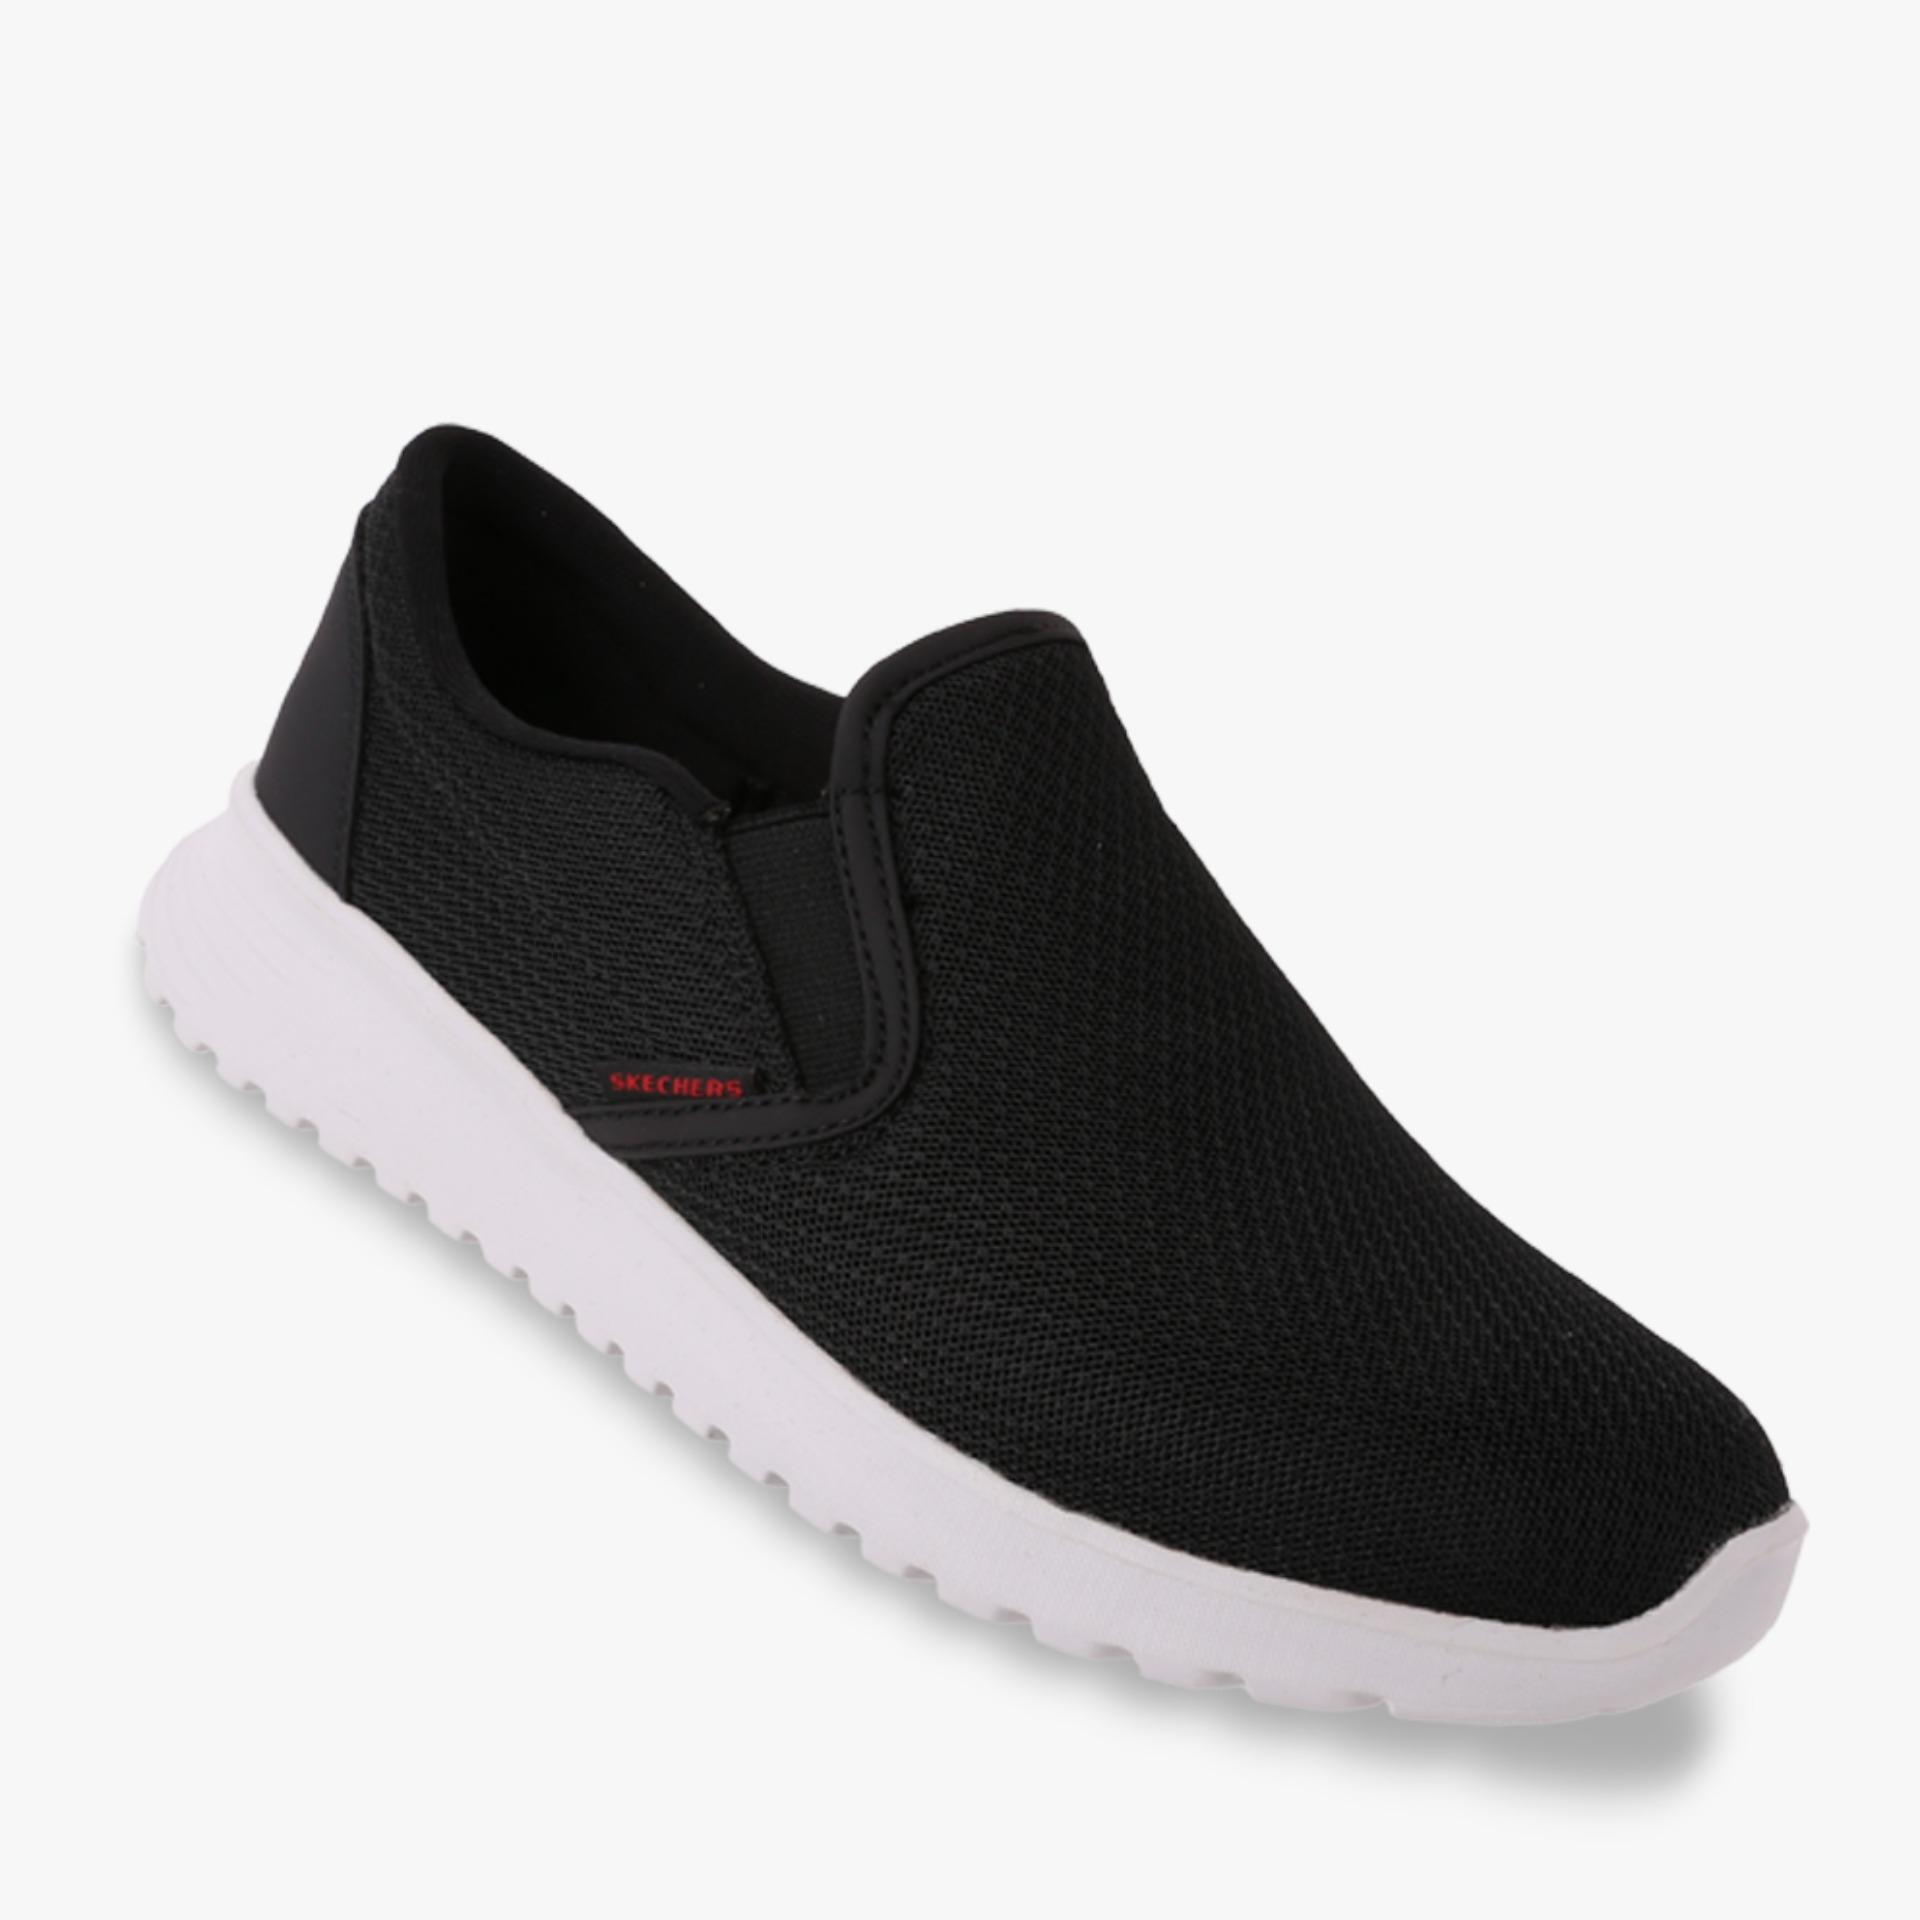 Beli Skechers Zimsey Men S Sneakers Shoes Hitam Seken